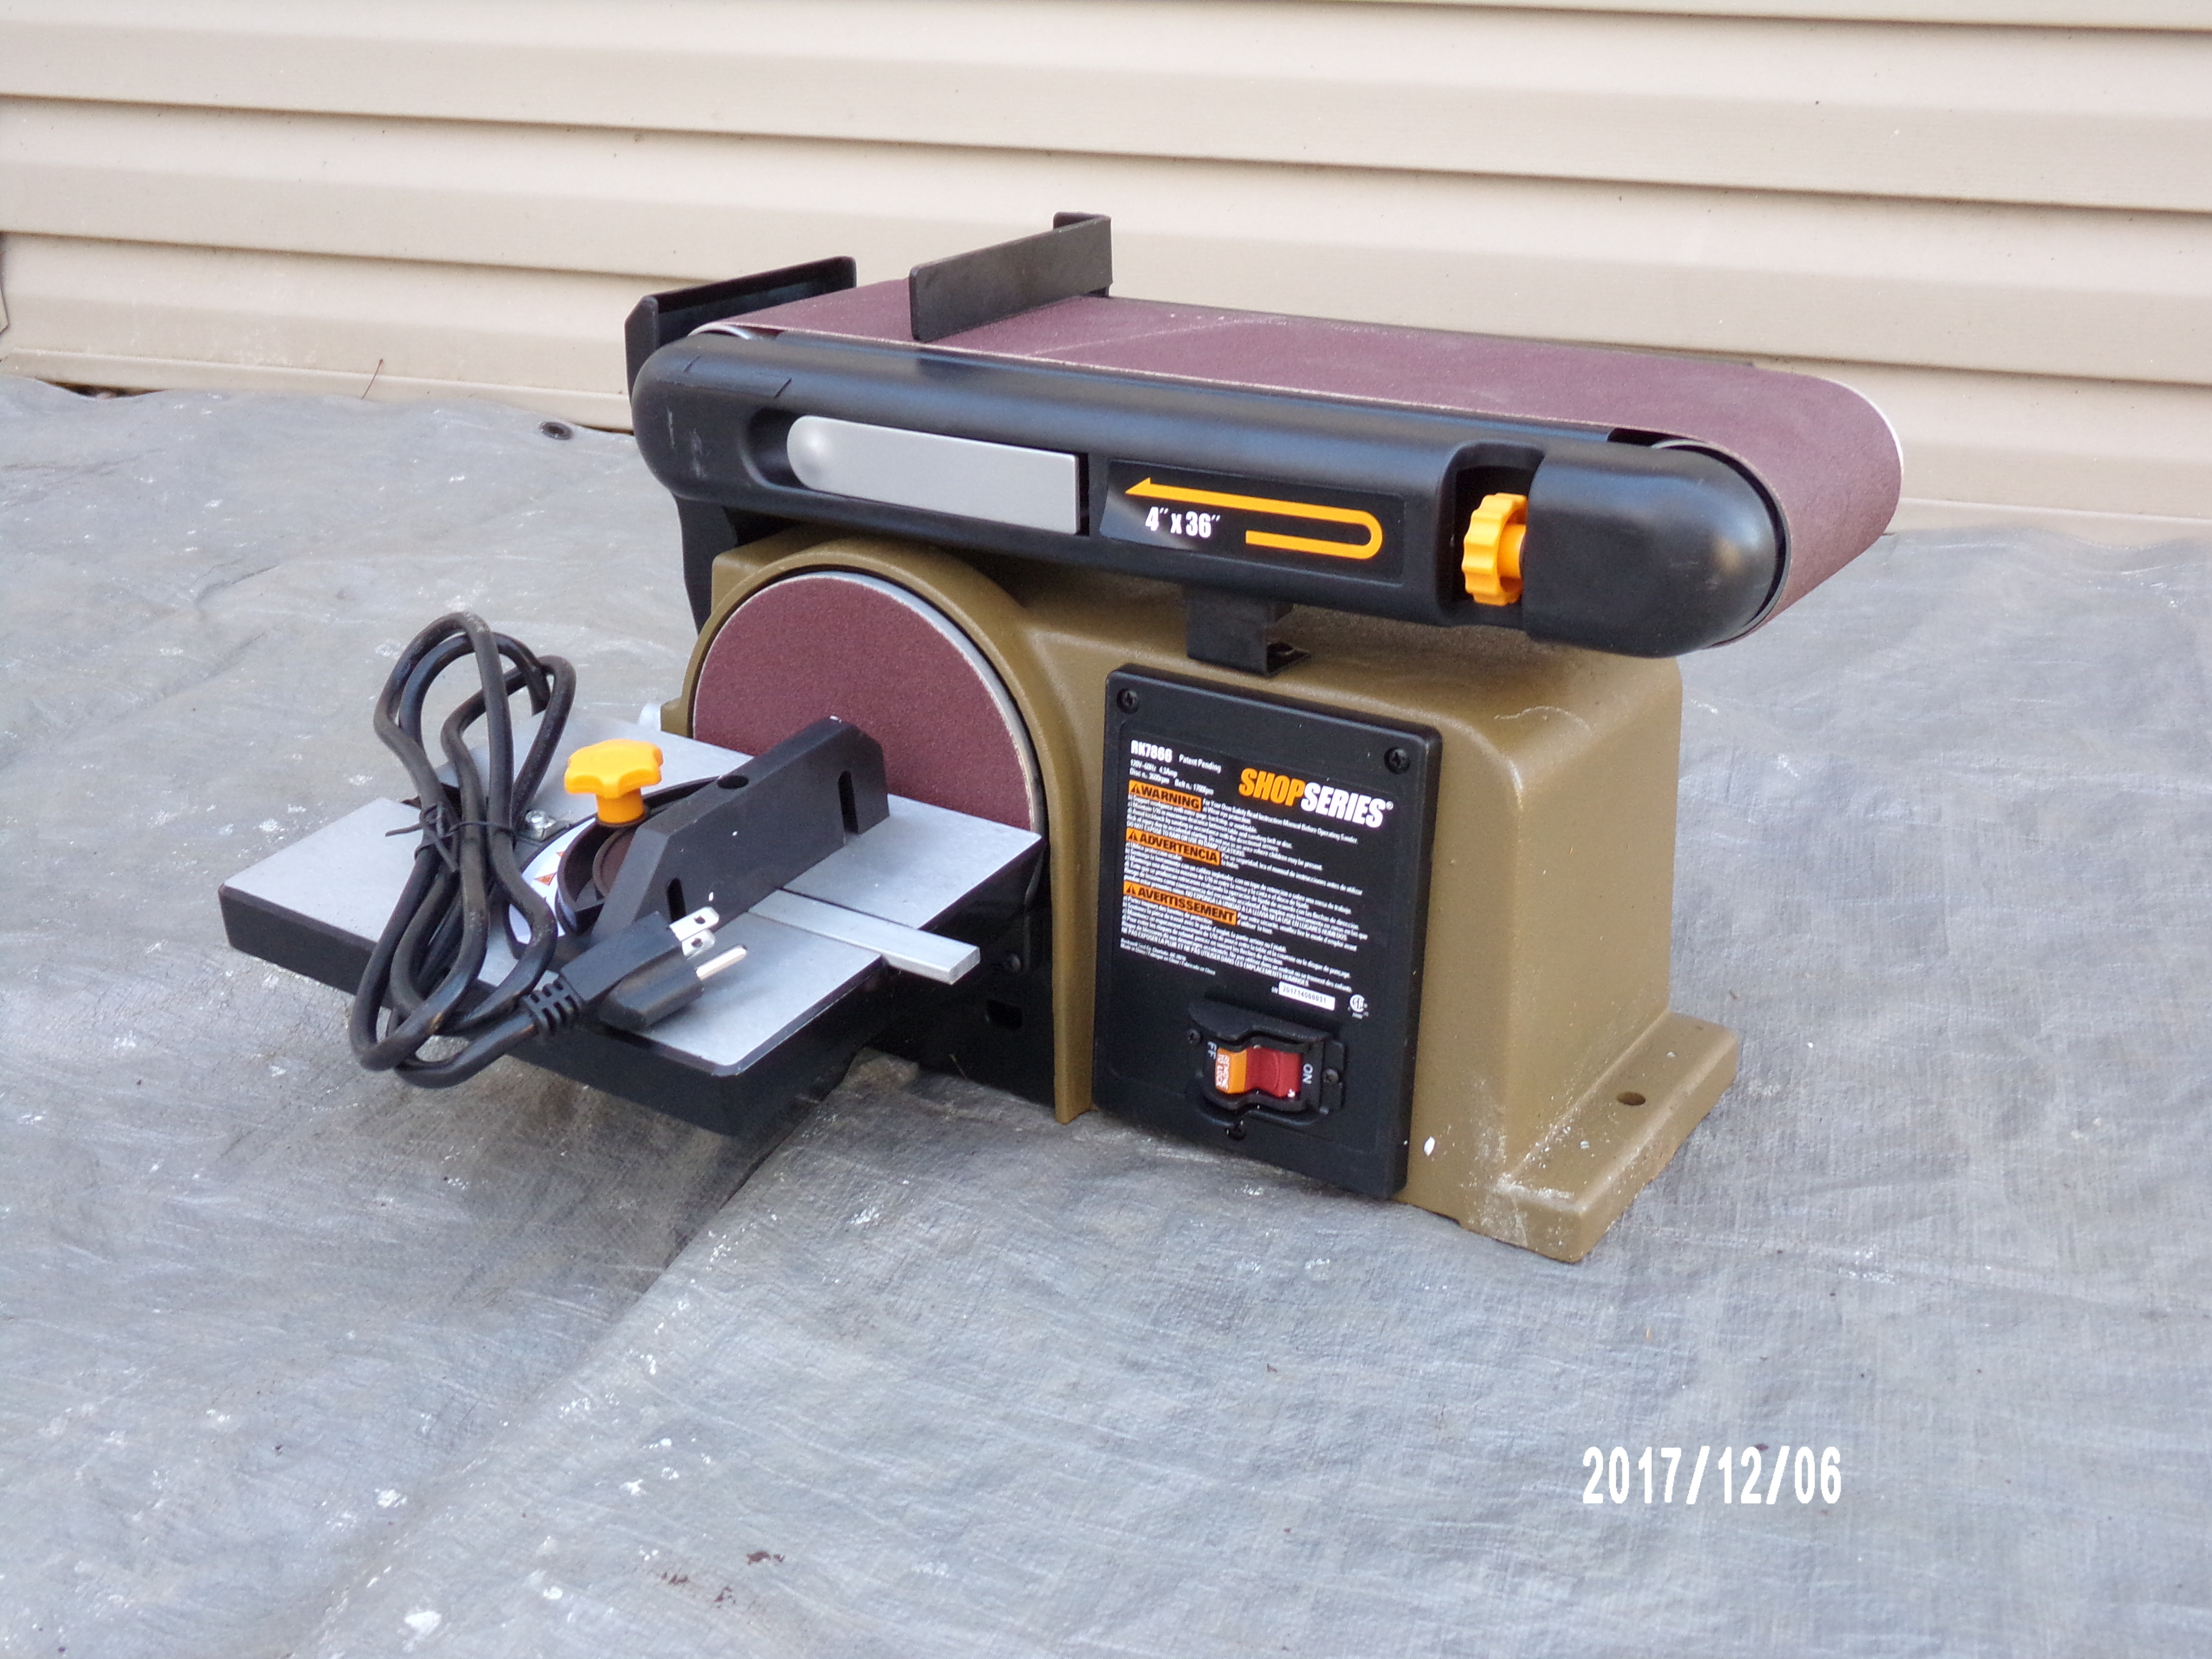 SHOPSERIES BELT-AND-DISC SANDER